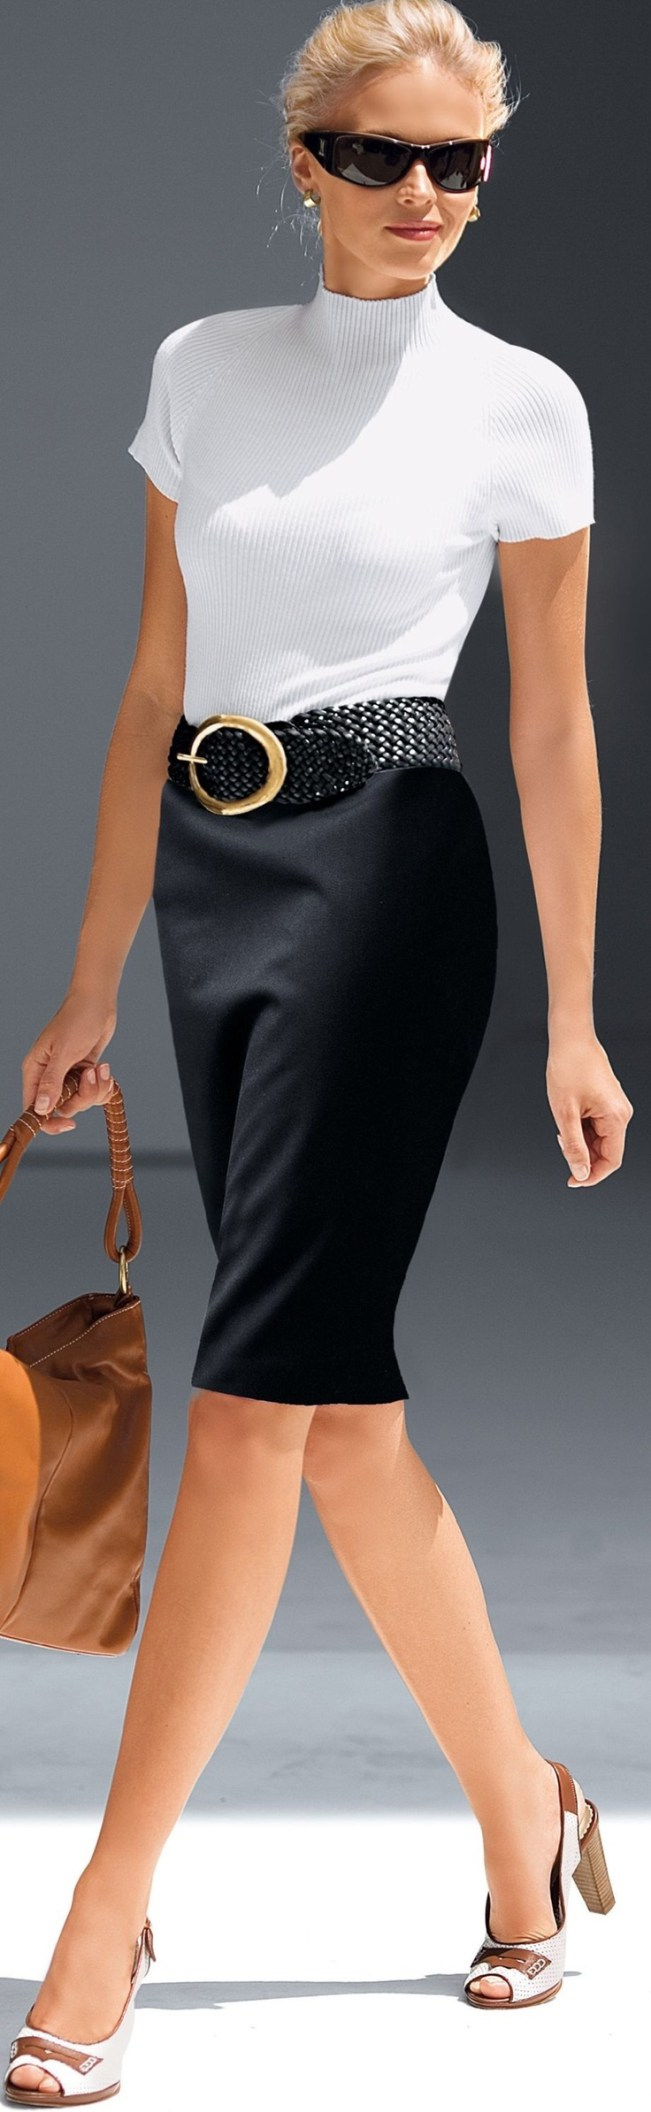 Elegant fashion style for the office.